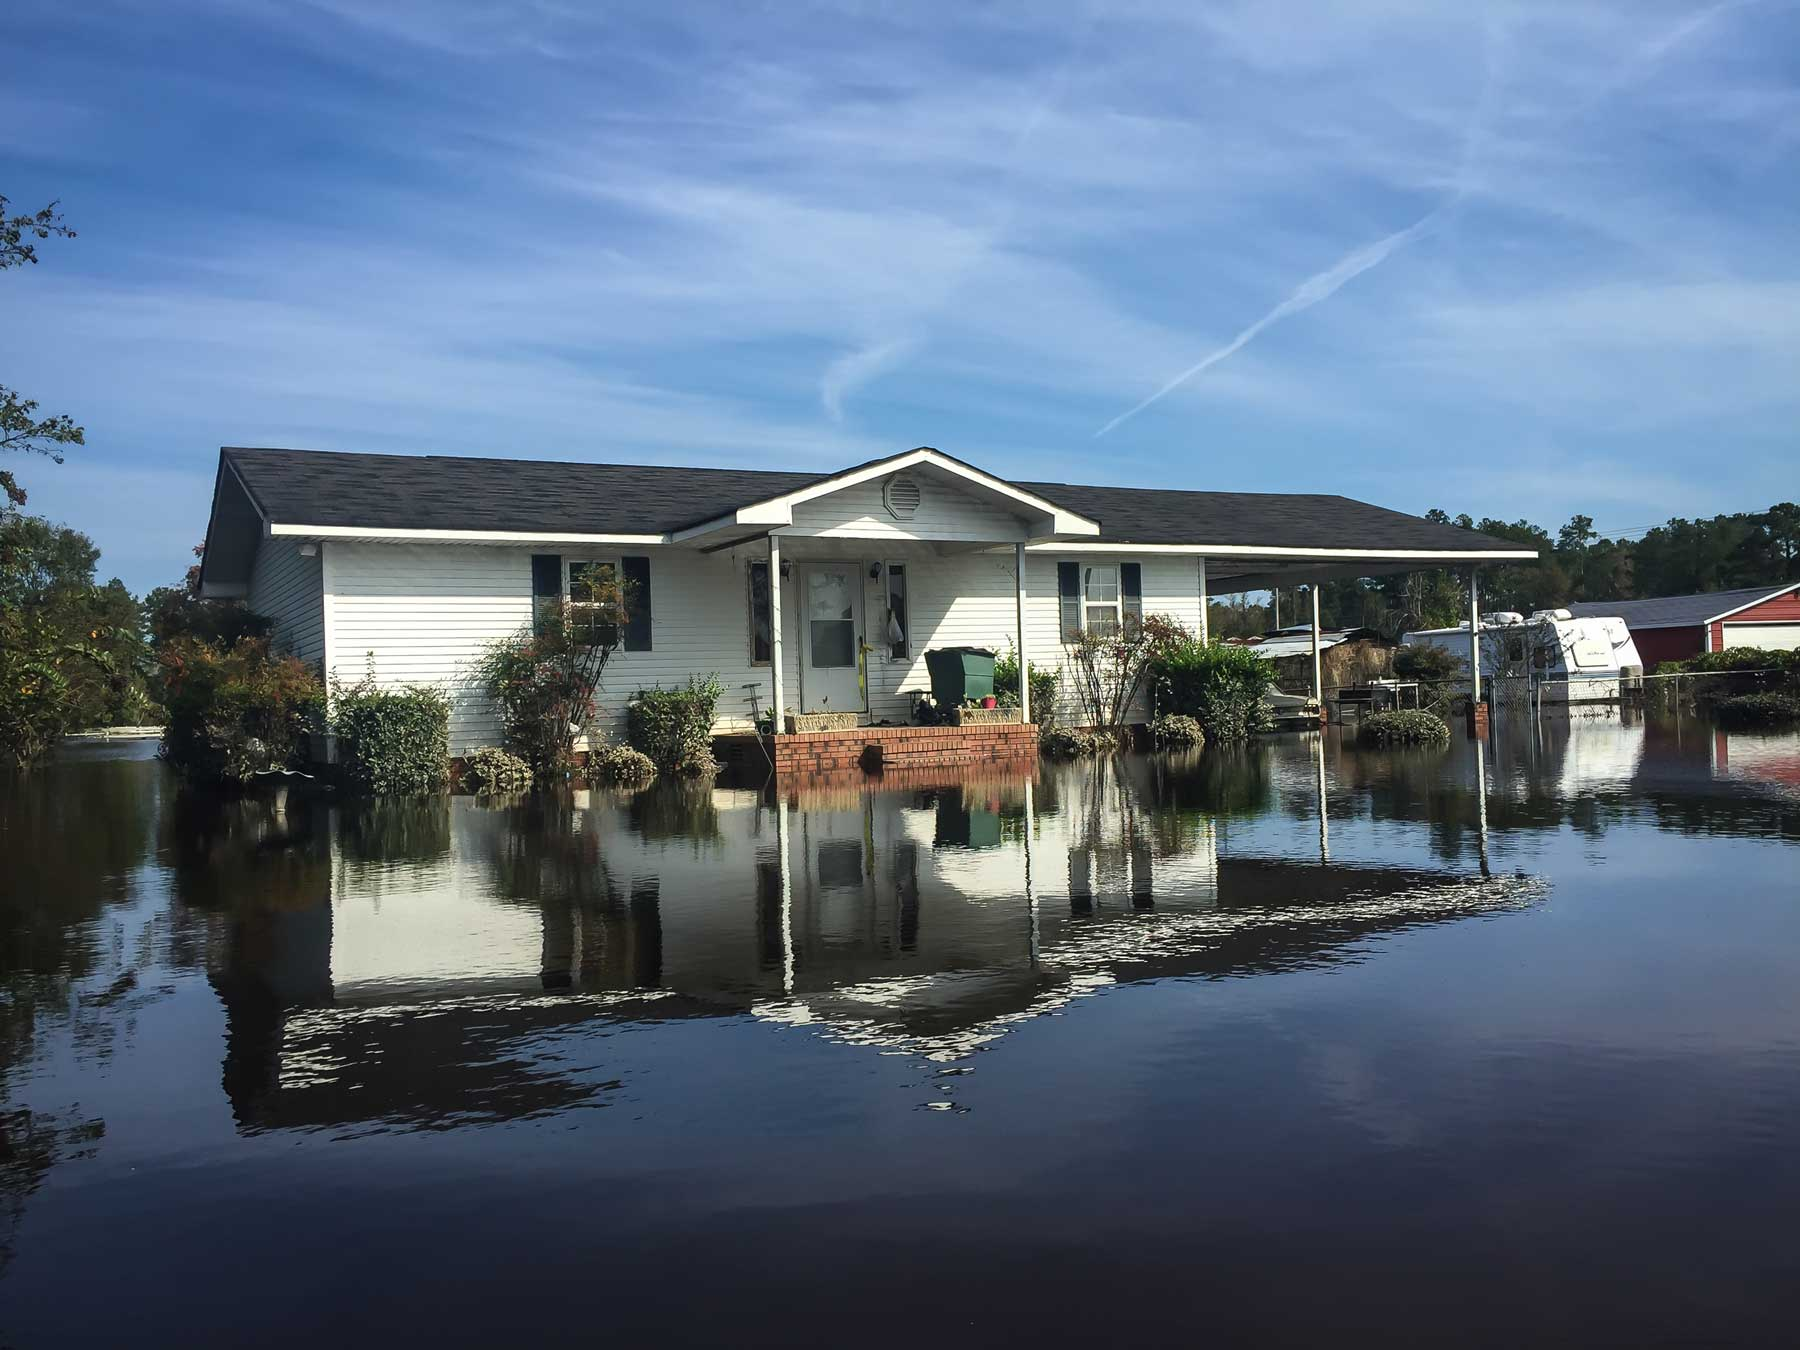 Blue skies are reflected in the floodwaters of Hurricane Matthew in Lumberton, N.C. (Julie Dermansky)